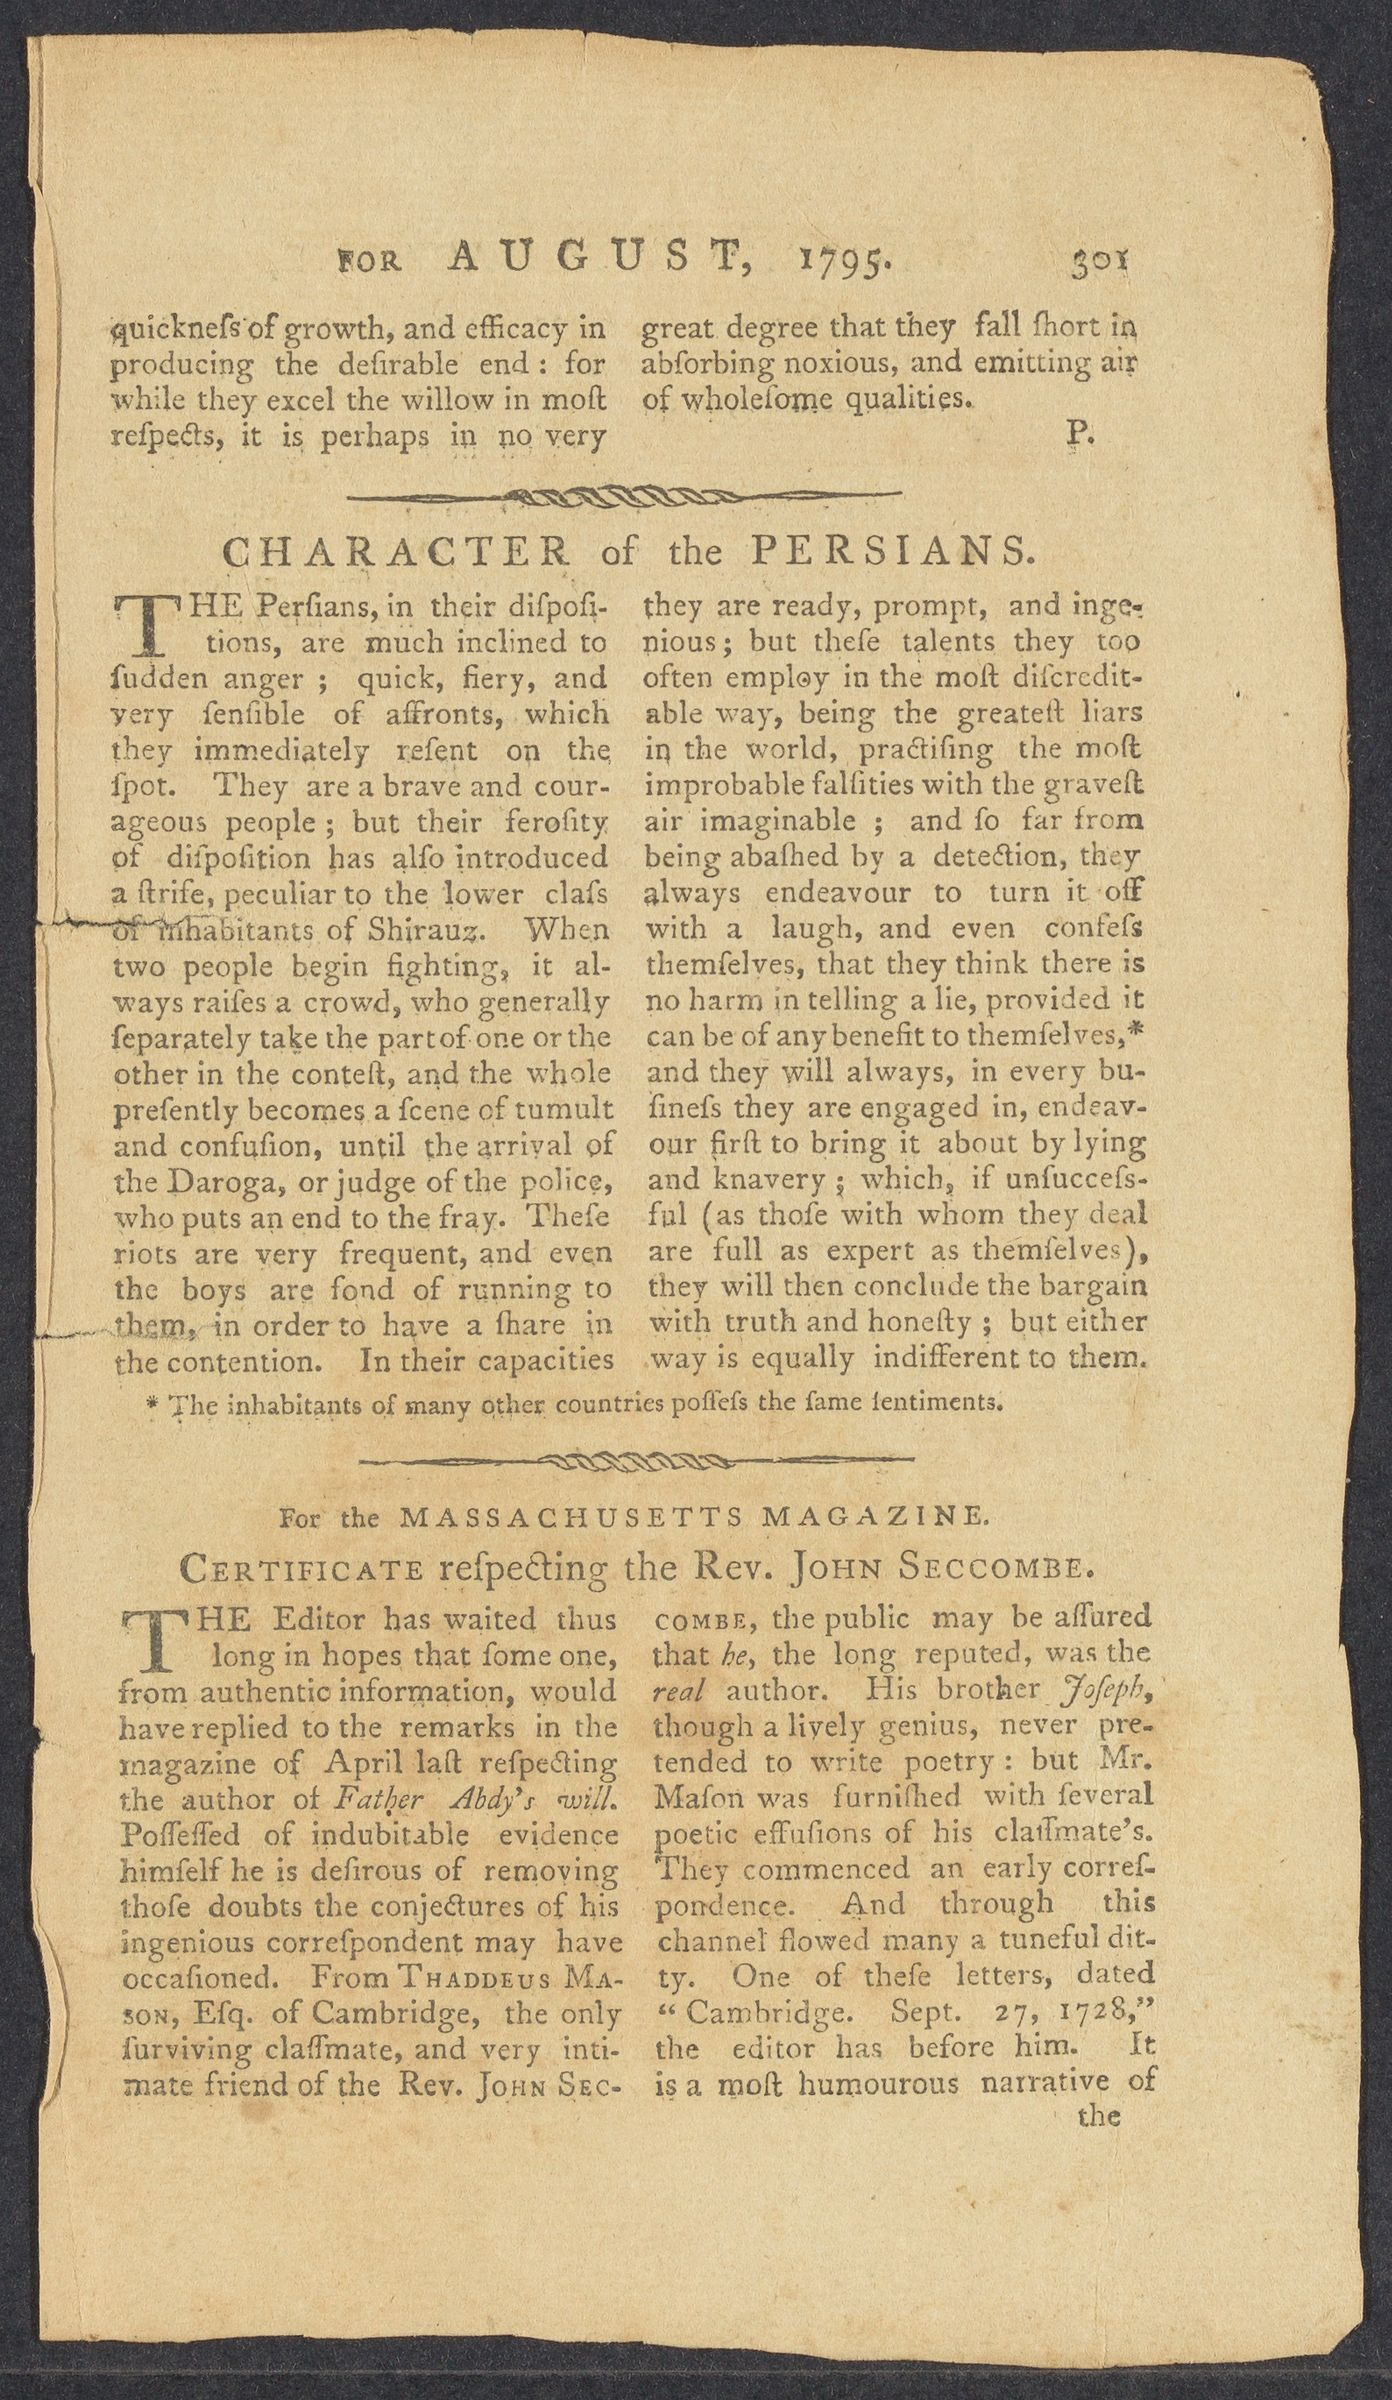 """Certificate respecting the Rev. John Seccombe,"" 1795 August"